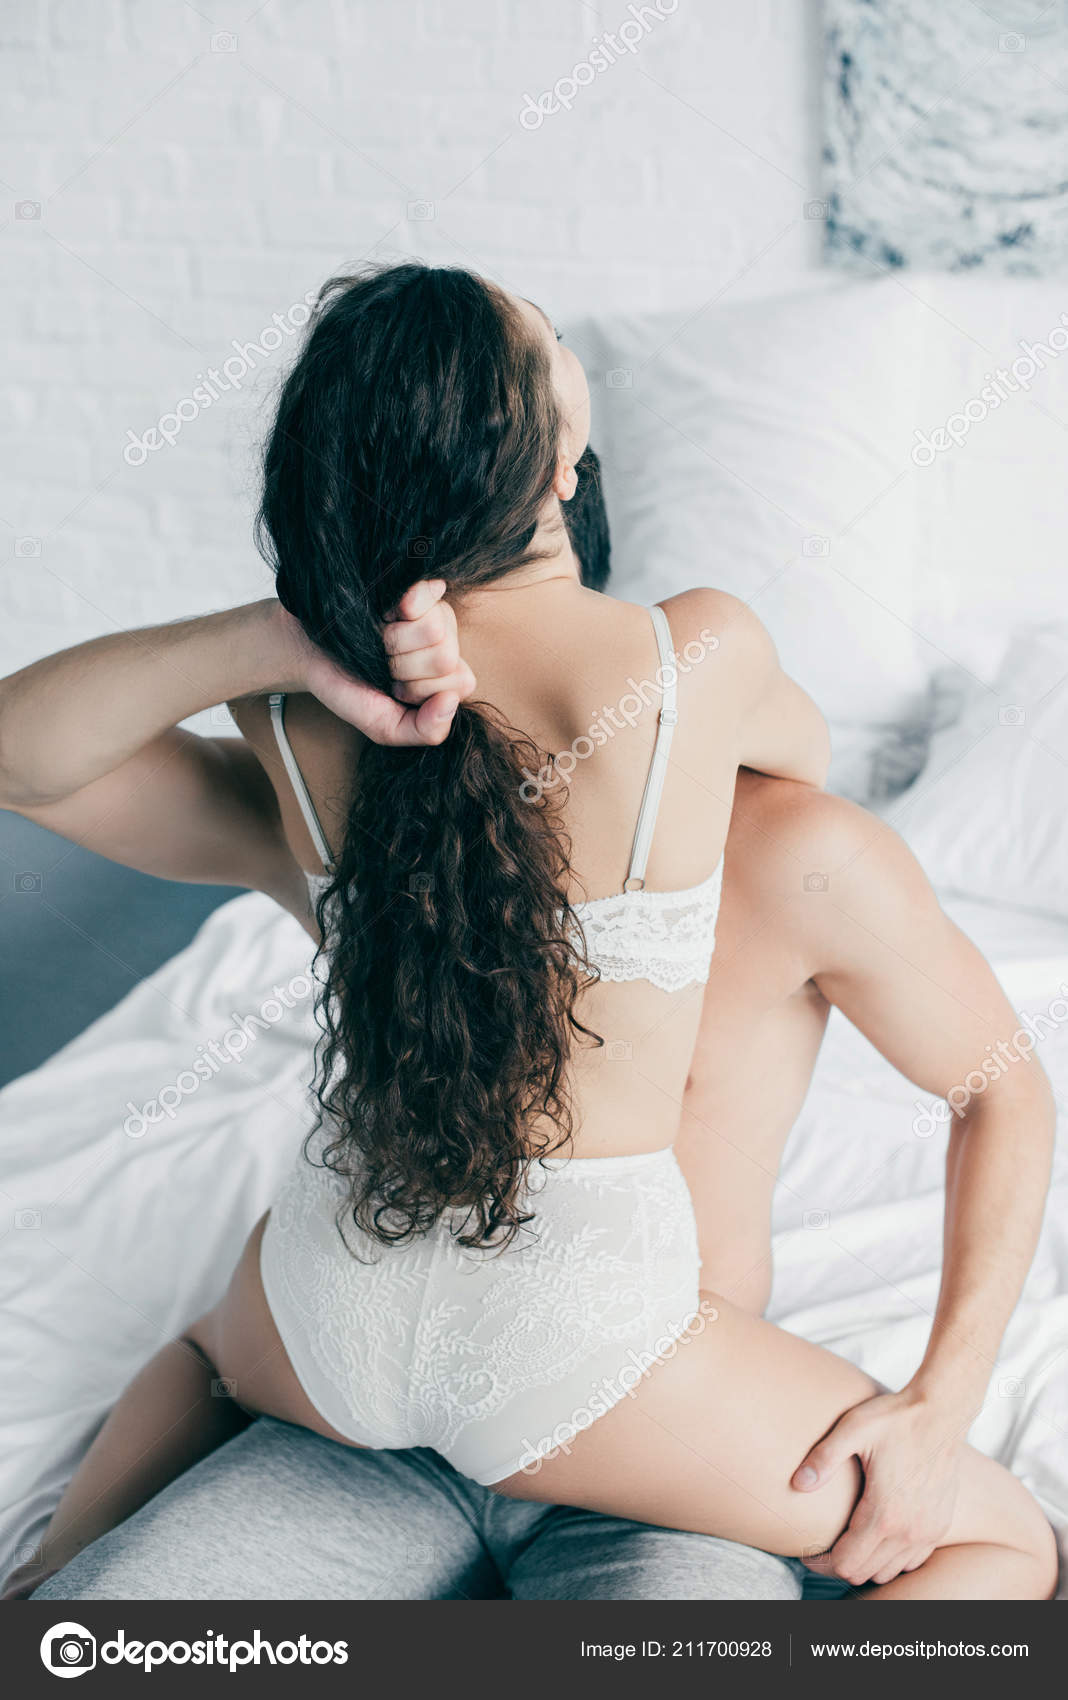 Passionate Young Couple Underwear Foreplay Bed Stock Photo